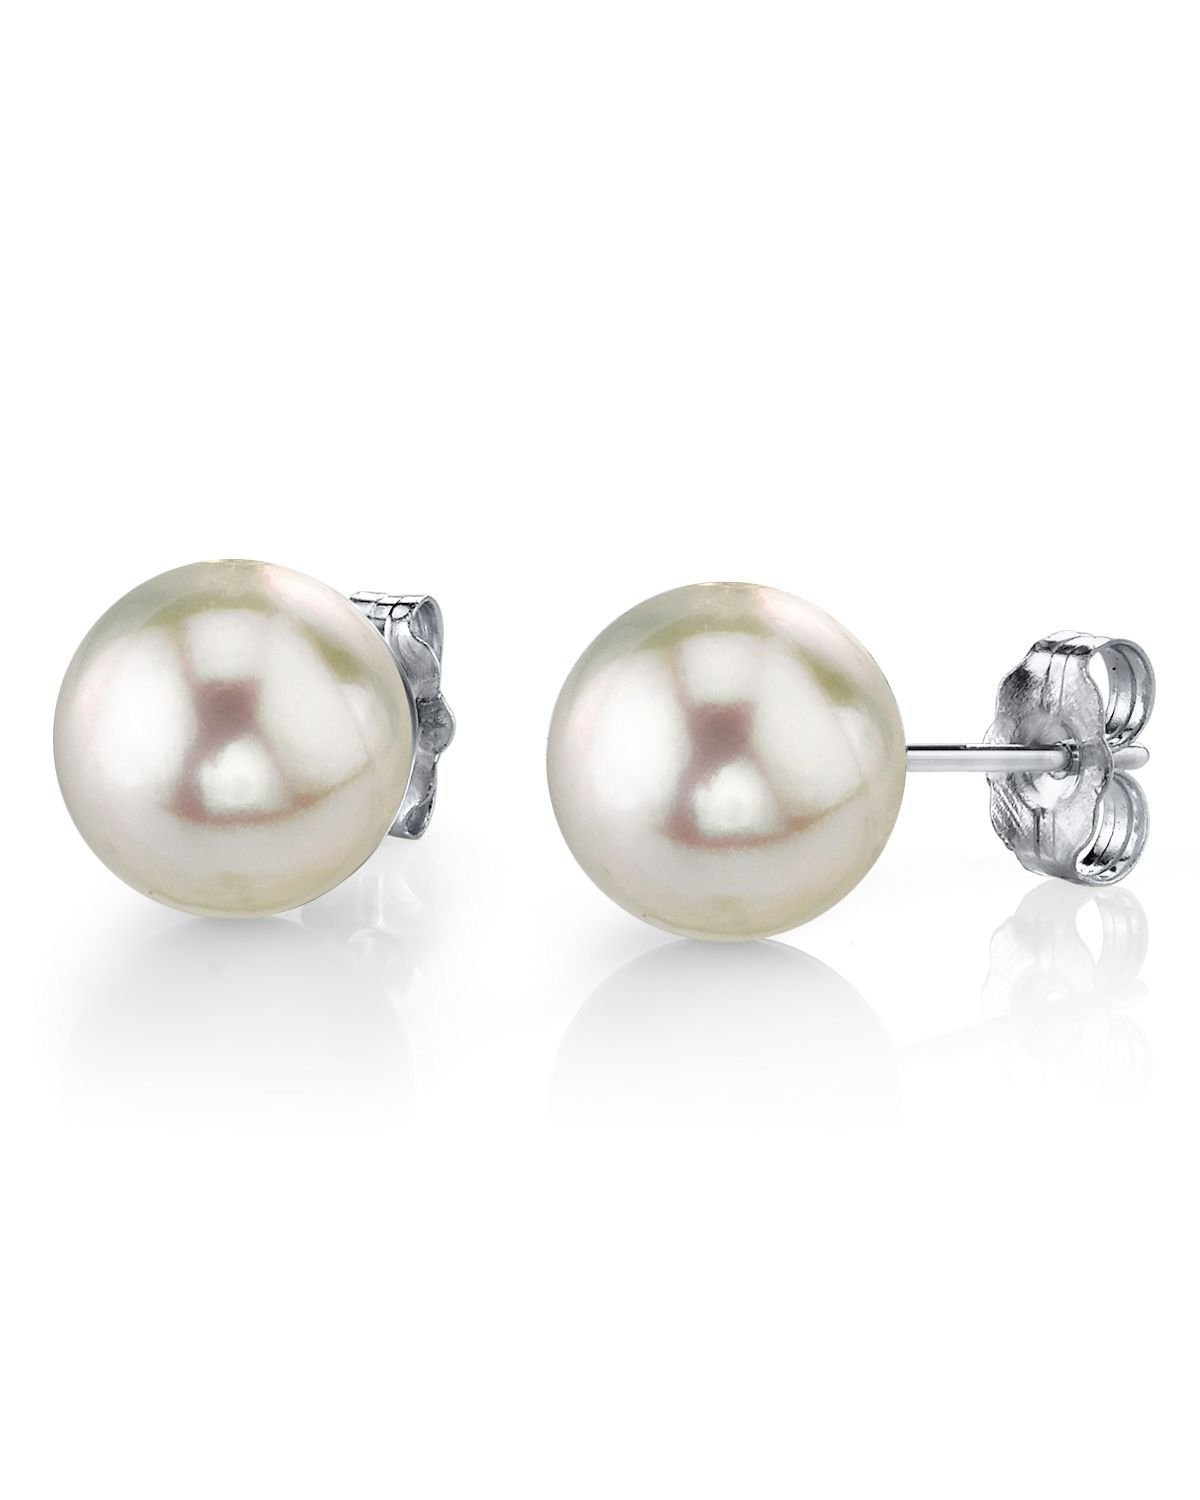 14K Gold 9-10mm White South Sea Cultured Pearl Stud Earrings - AAA Quality